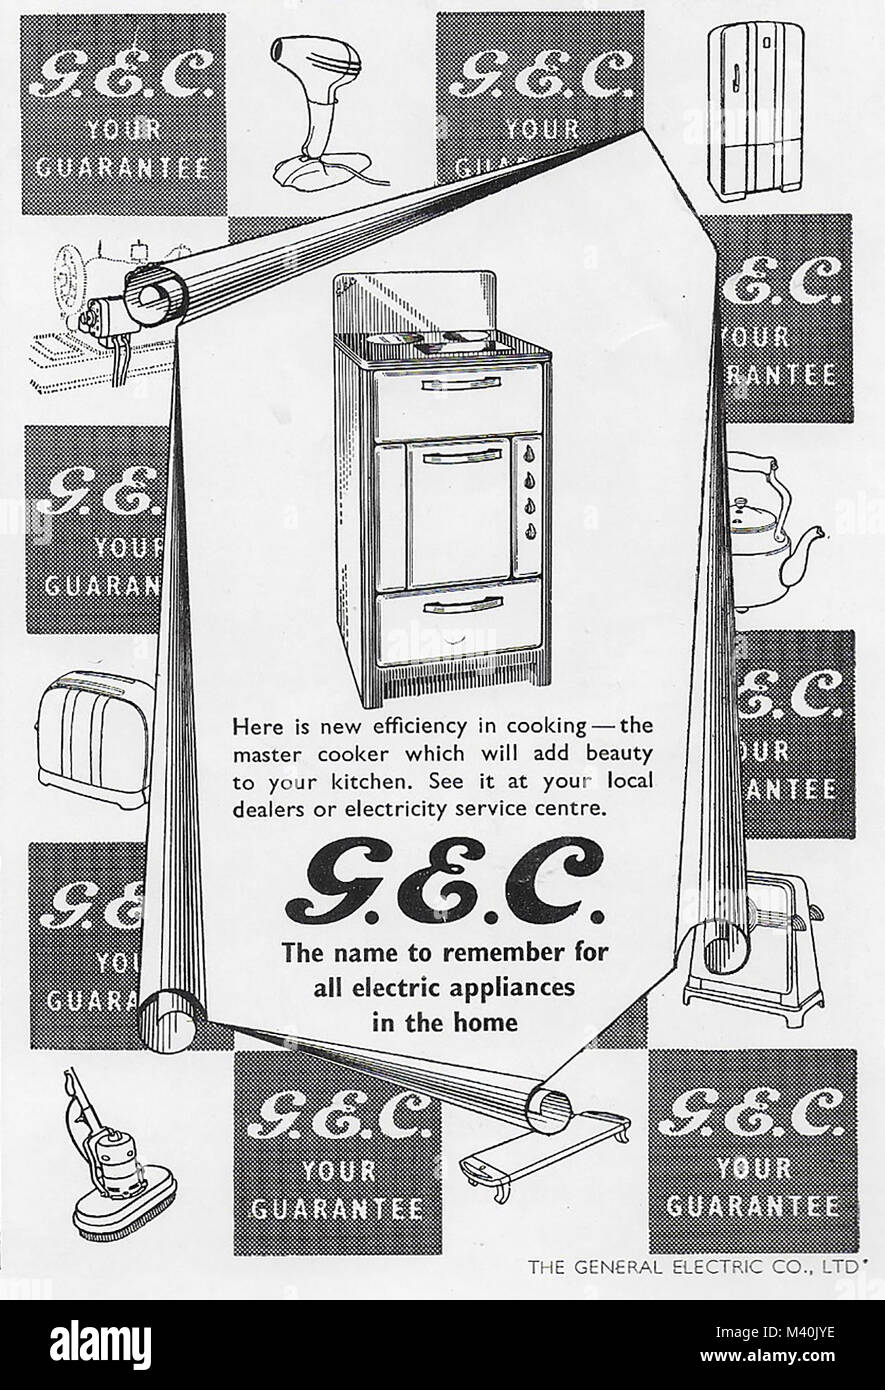 GEC General Electric Company advert, advertising in Country